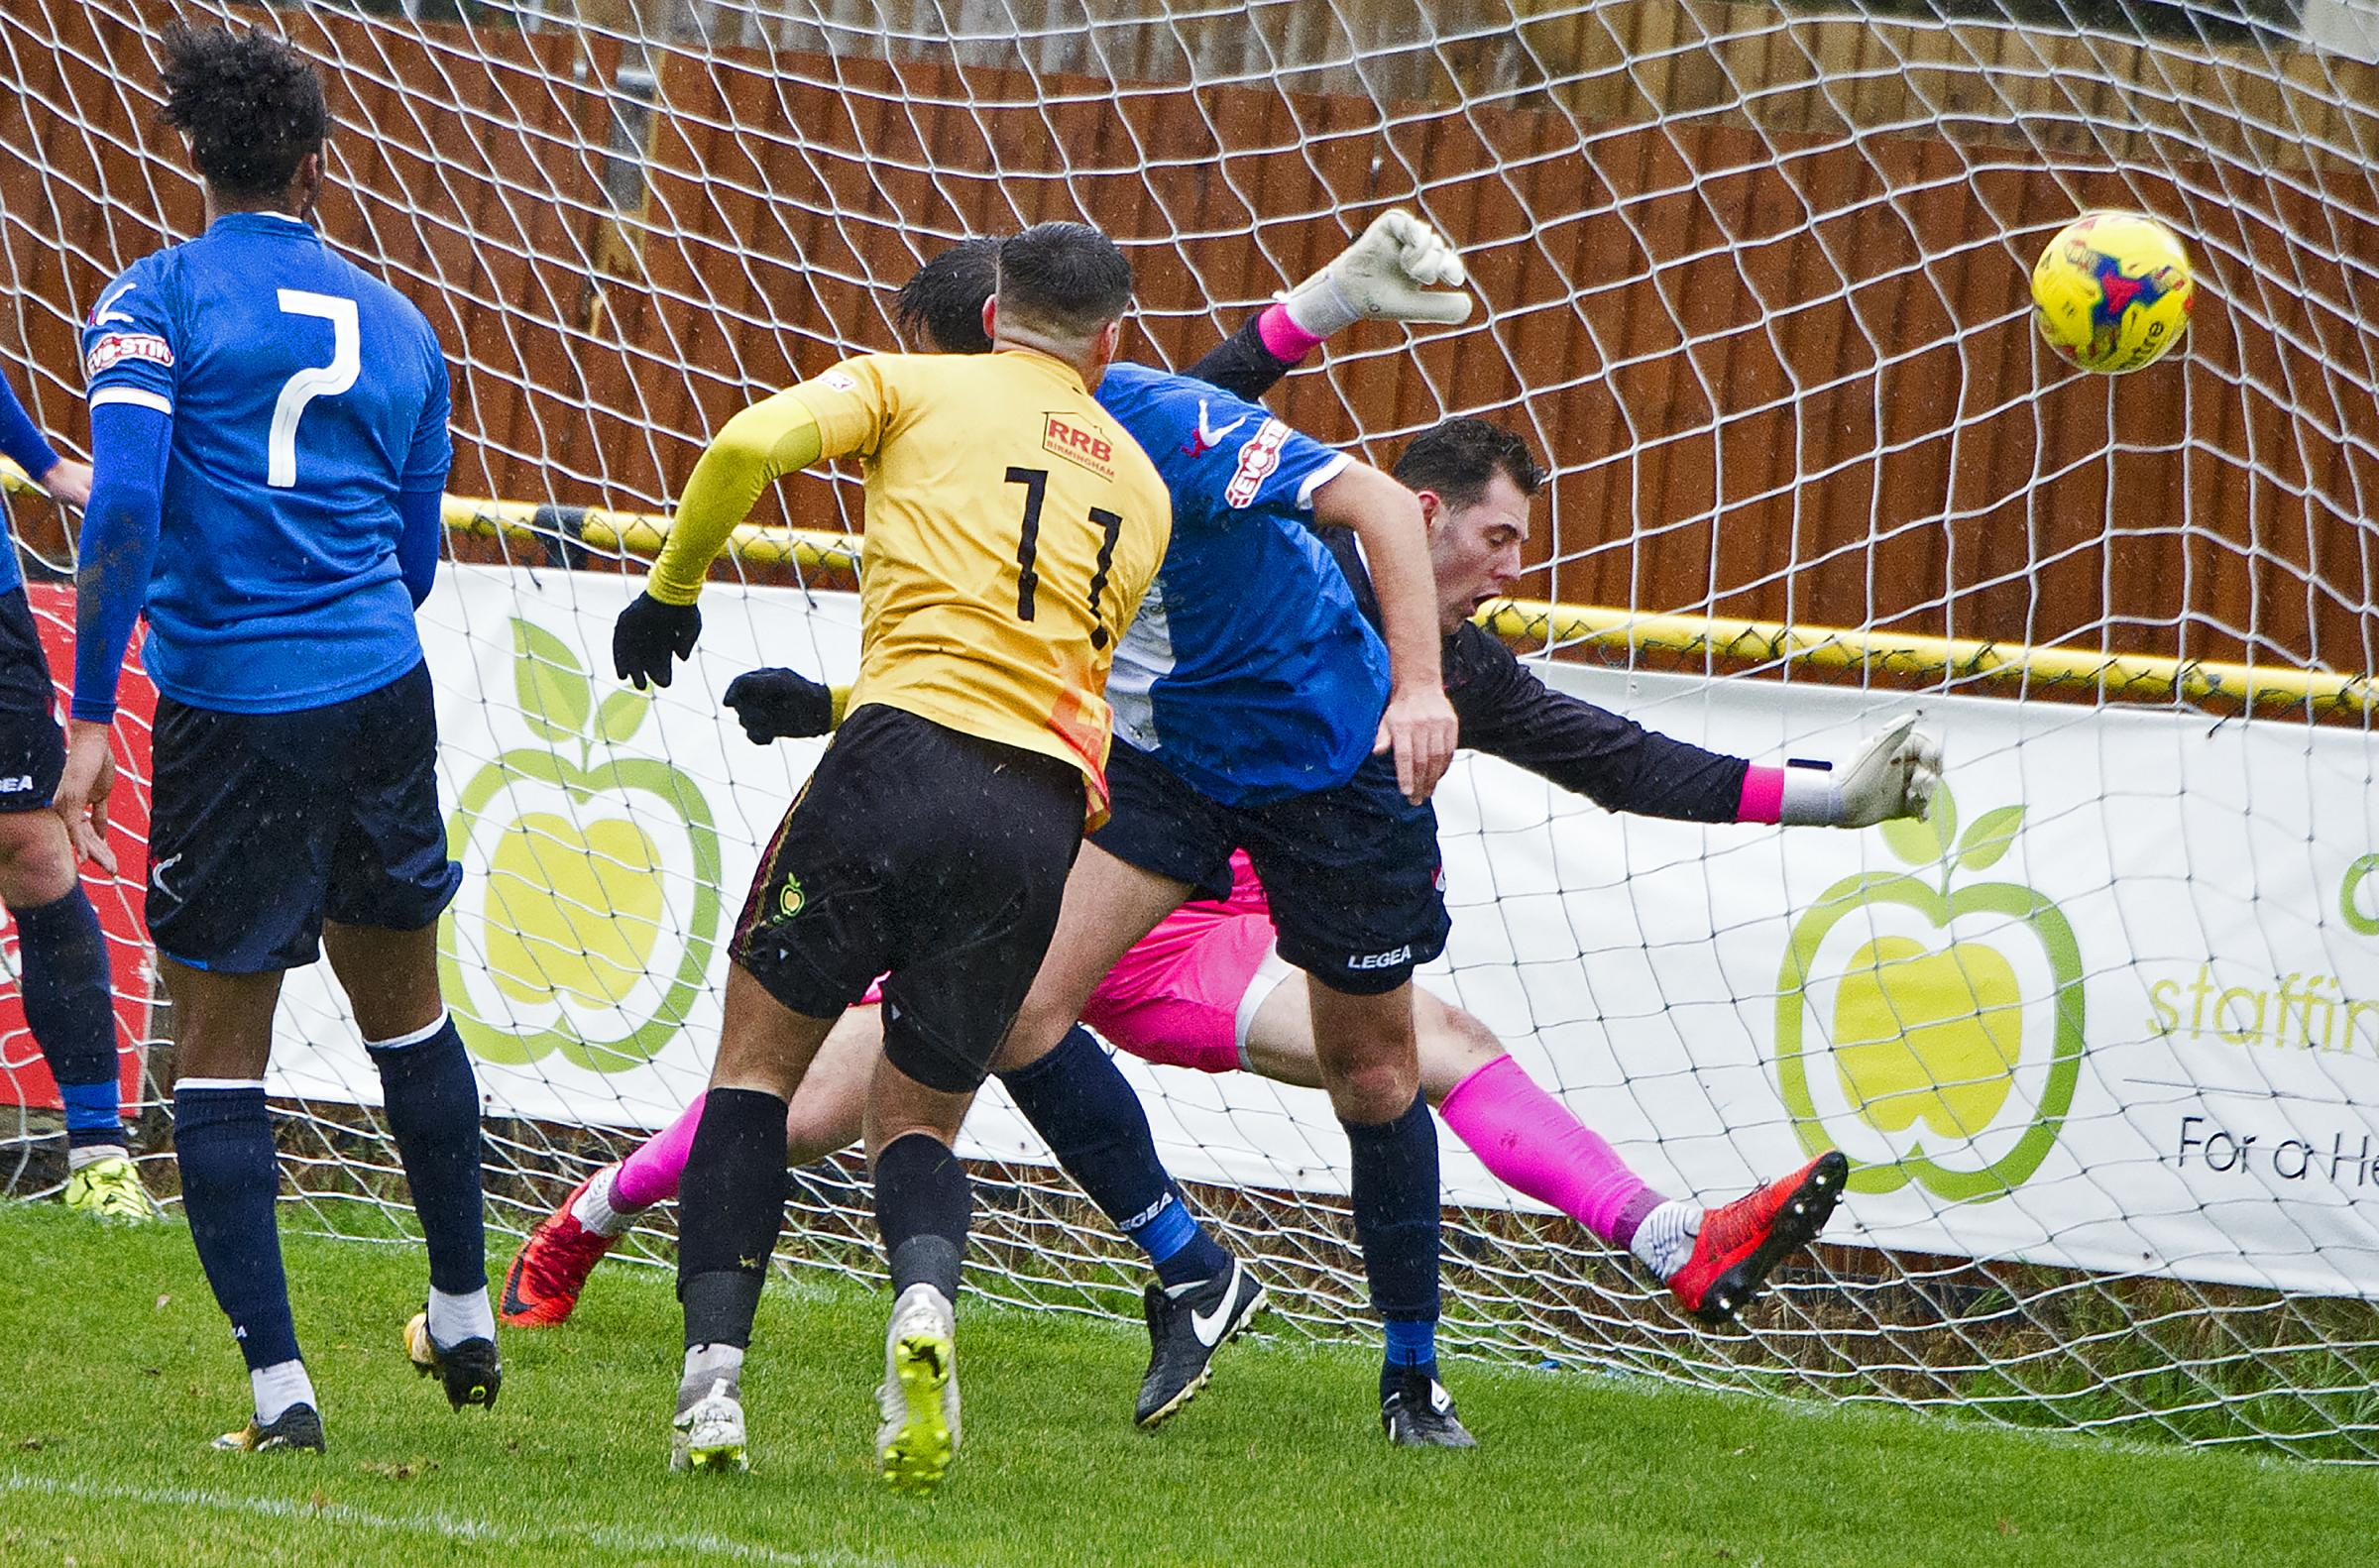 Josh March scores for Alvechurch. Photo by Paul France